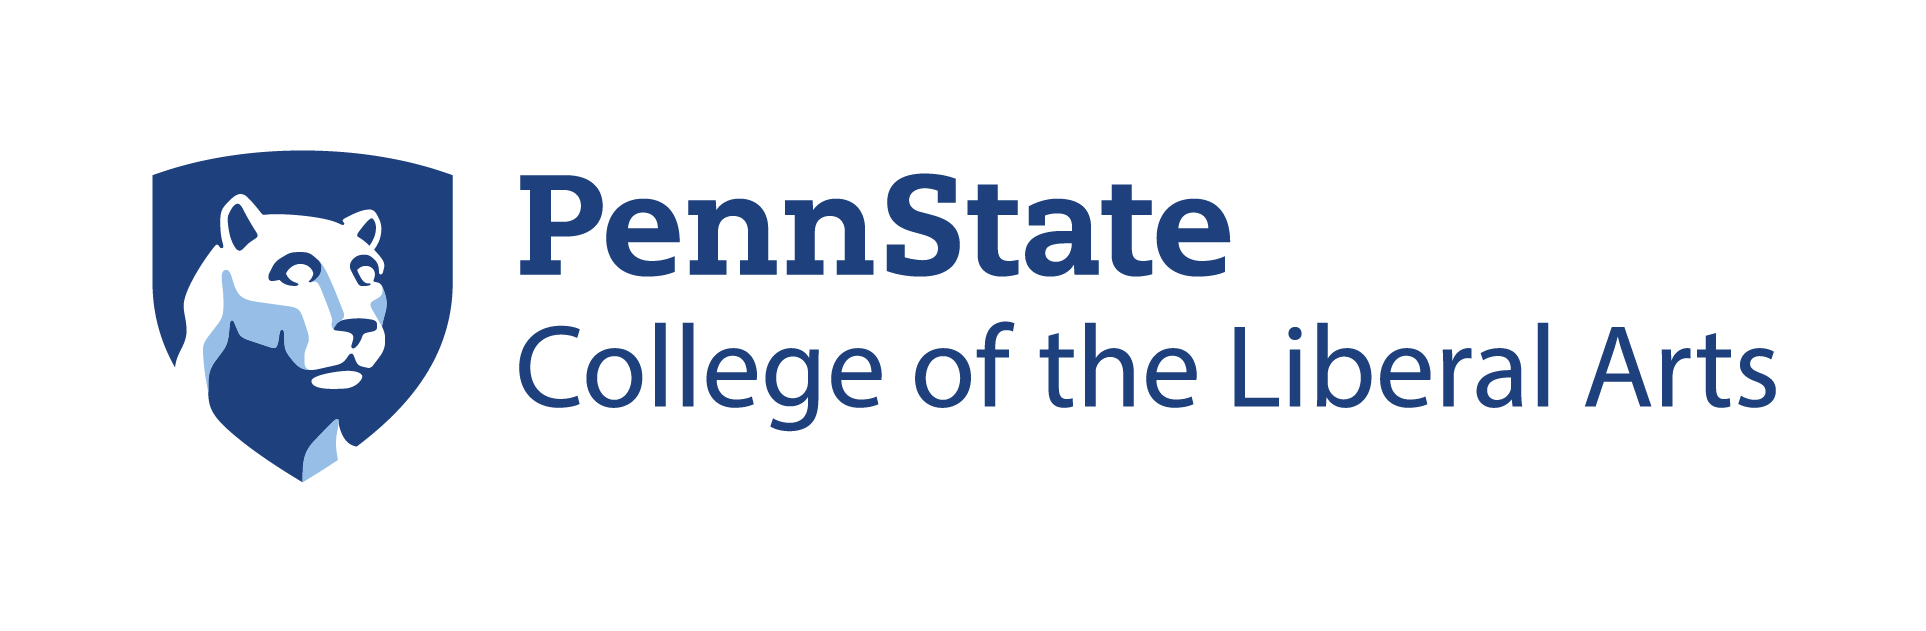 Essay clipart essay competition. Penn state admissions prompts